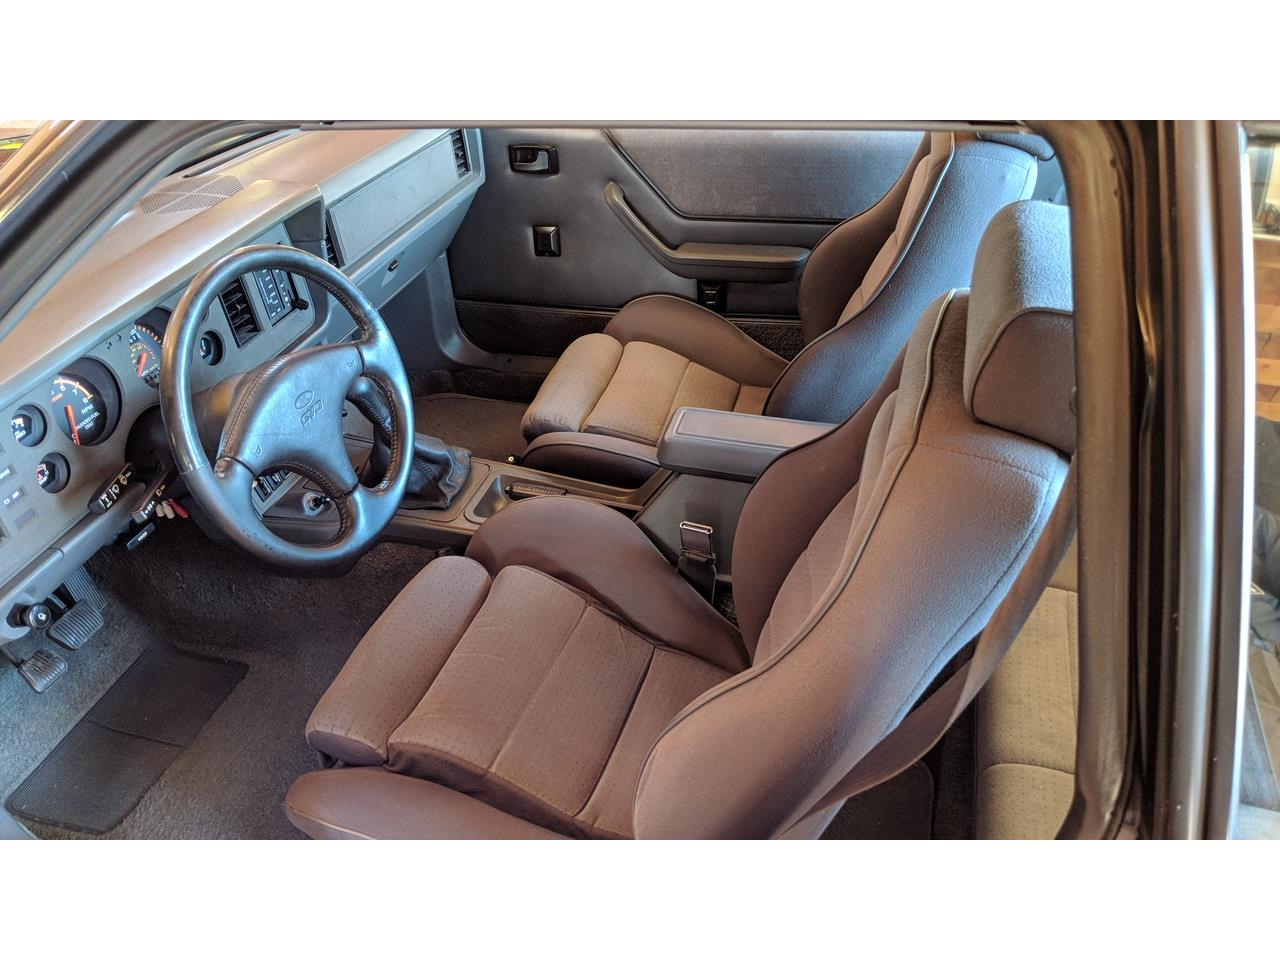 Large Picture of 1984 Ford Mustang SVO located in Arizona - $15,800.00 Offered by a Private Seller - MXZ6